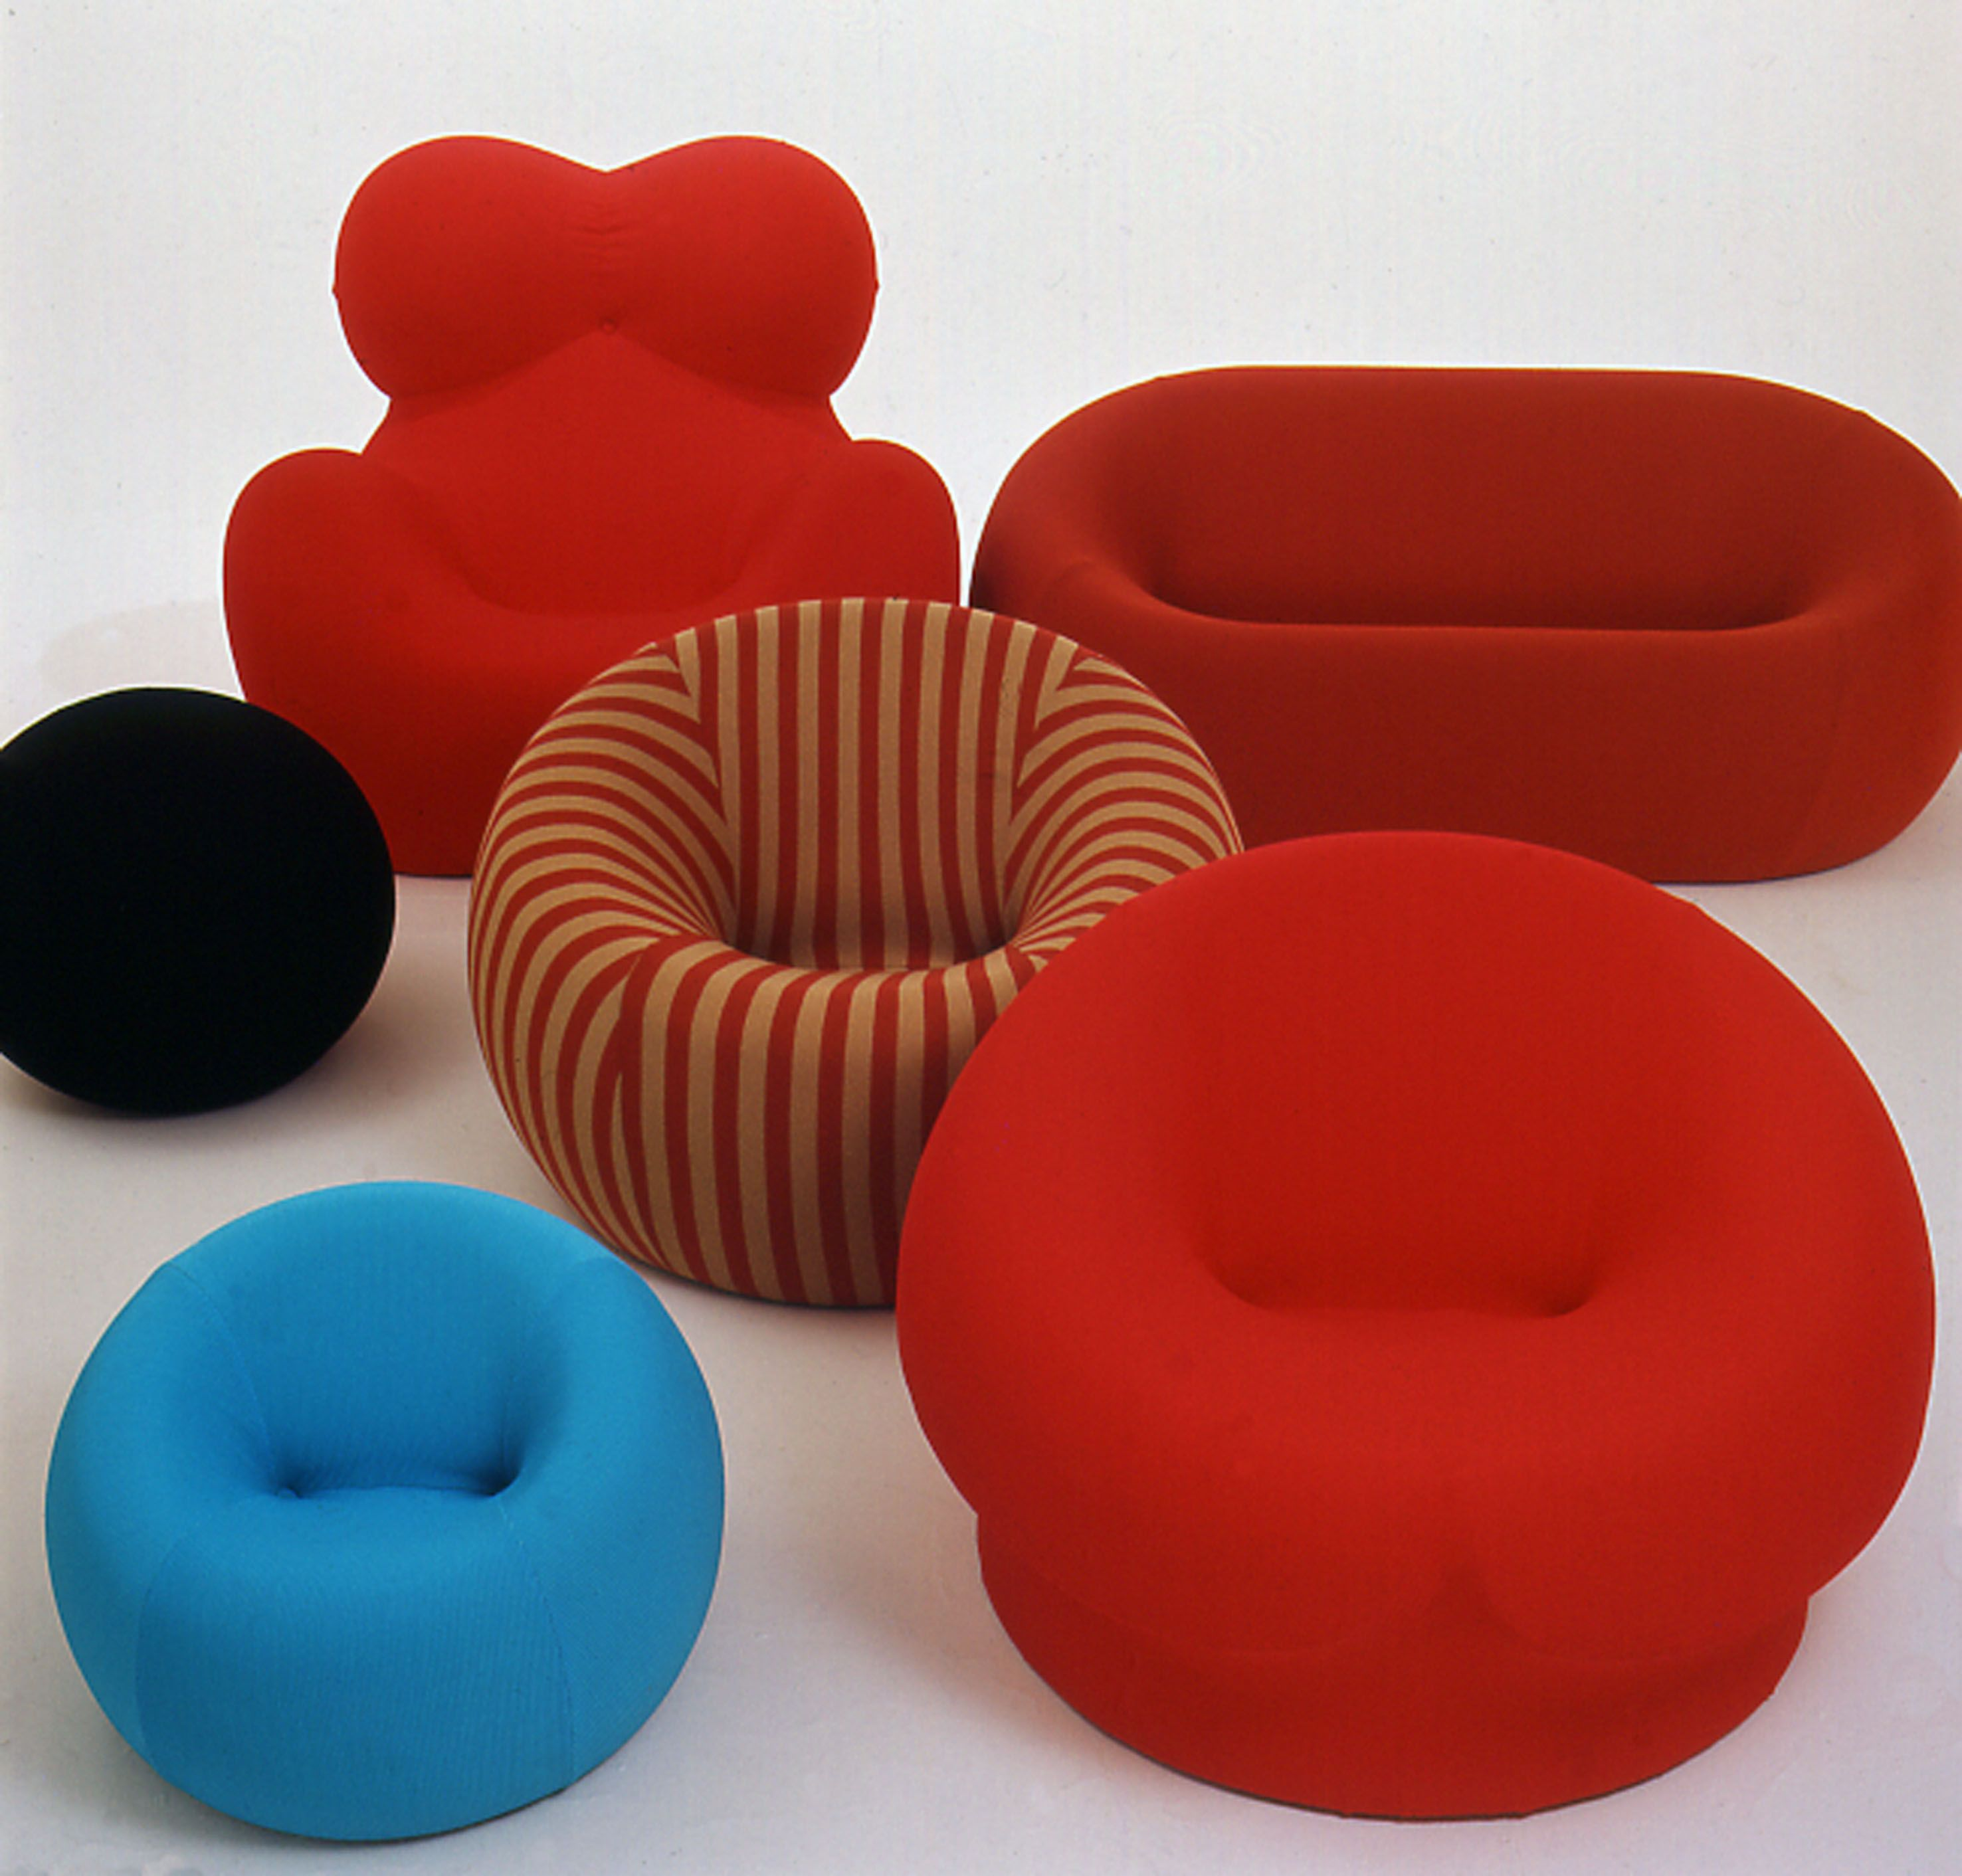 Gaetano Pesce 1969 Up Series. What Amazes Me In This Pieces Is Not How It Images